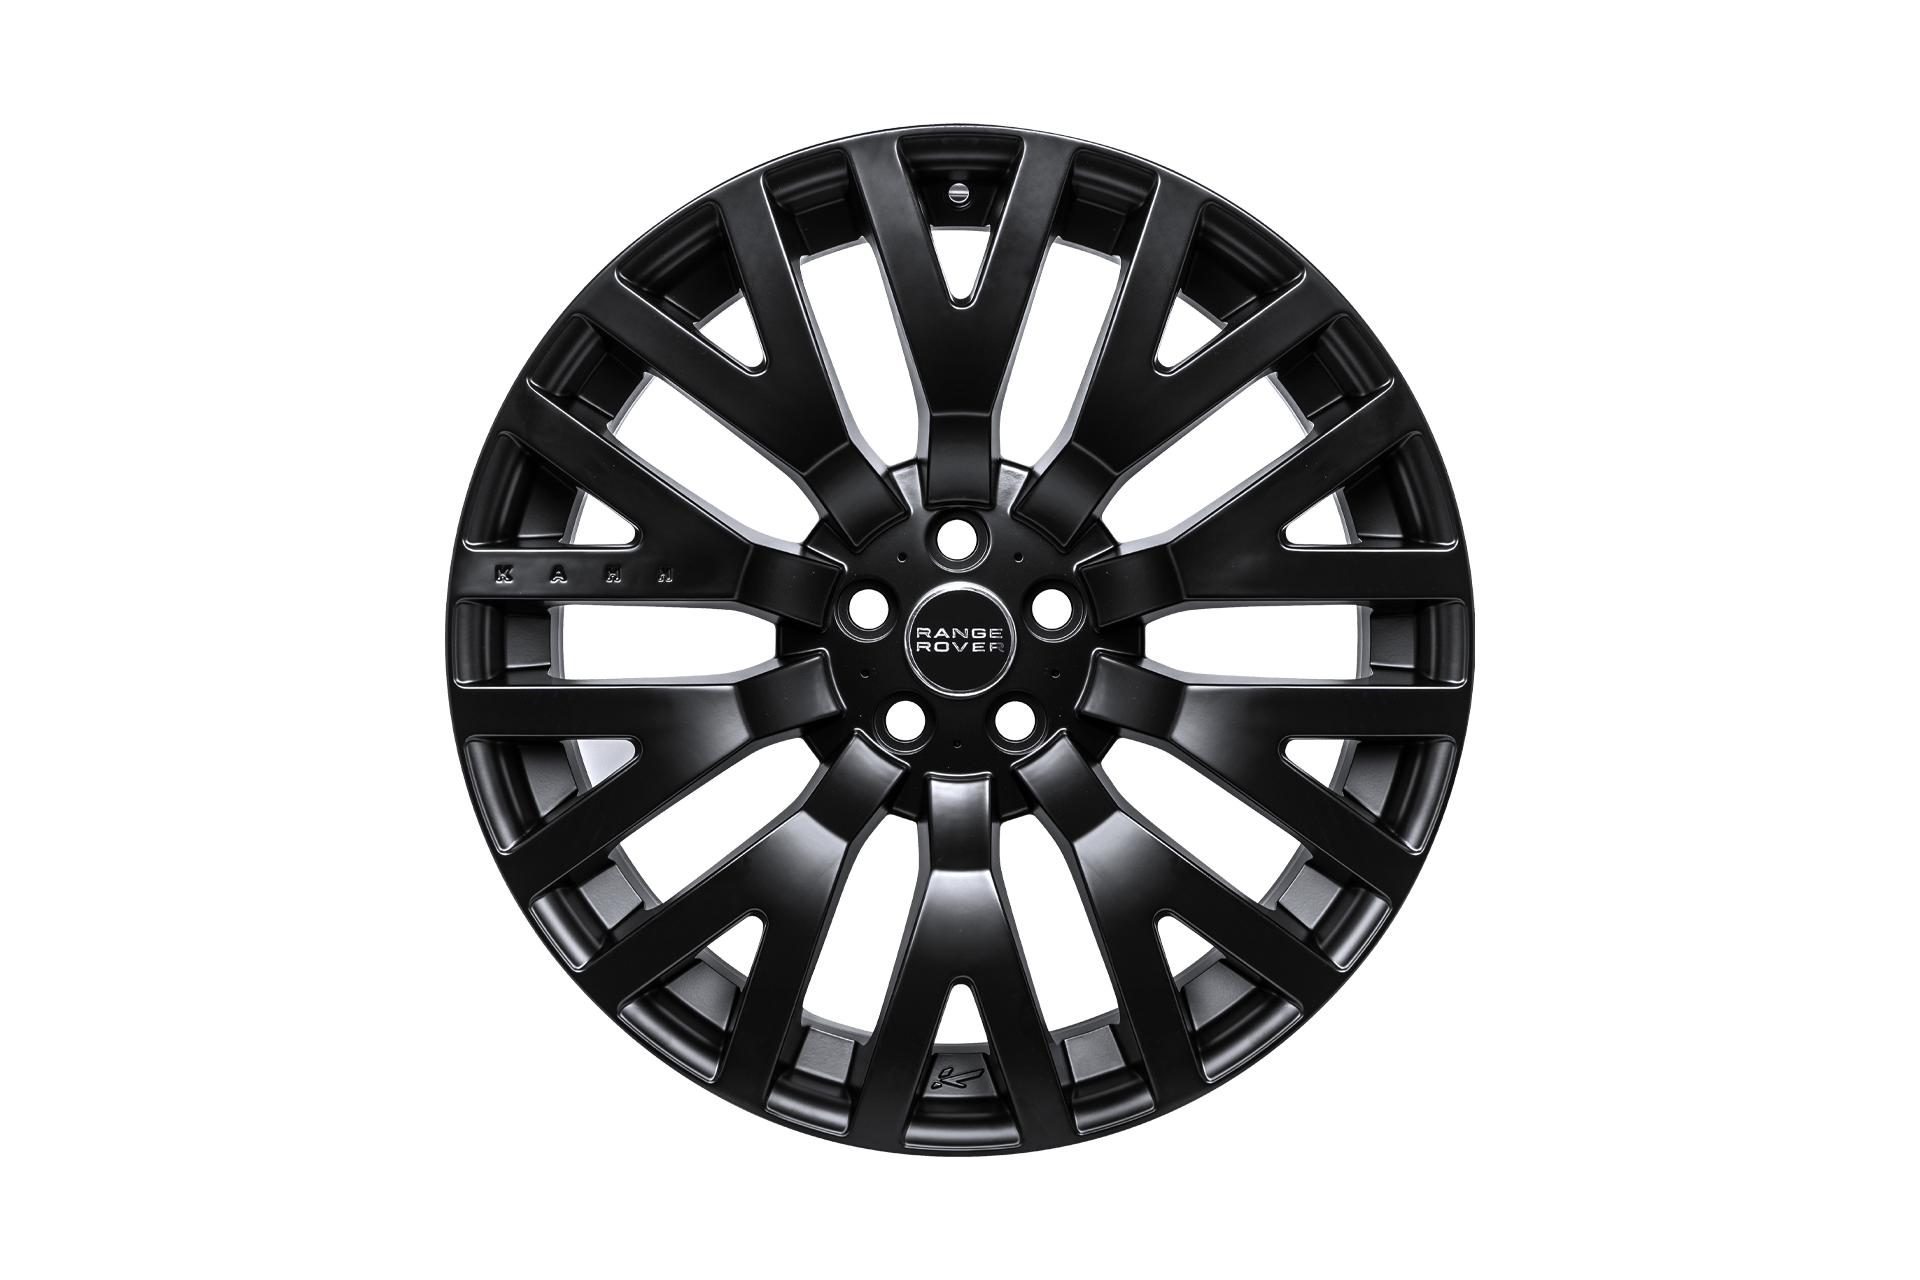 Range Rover Sport Svr (2018-Present) Rs Light Alloy Wheels by Kahn - Image 3477